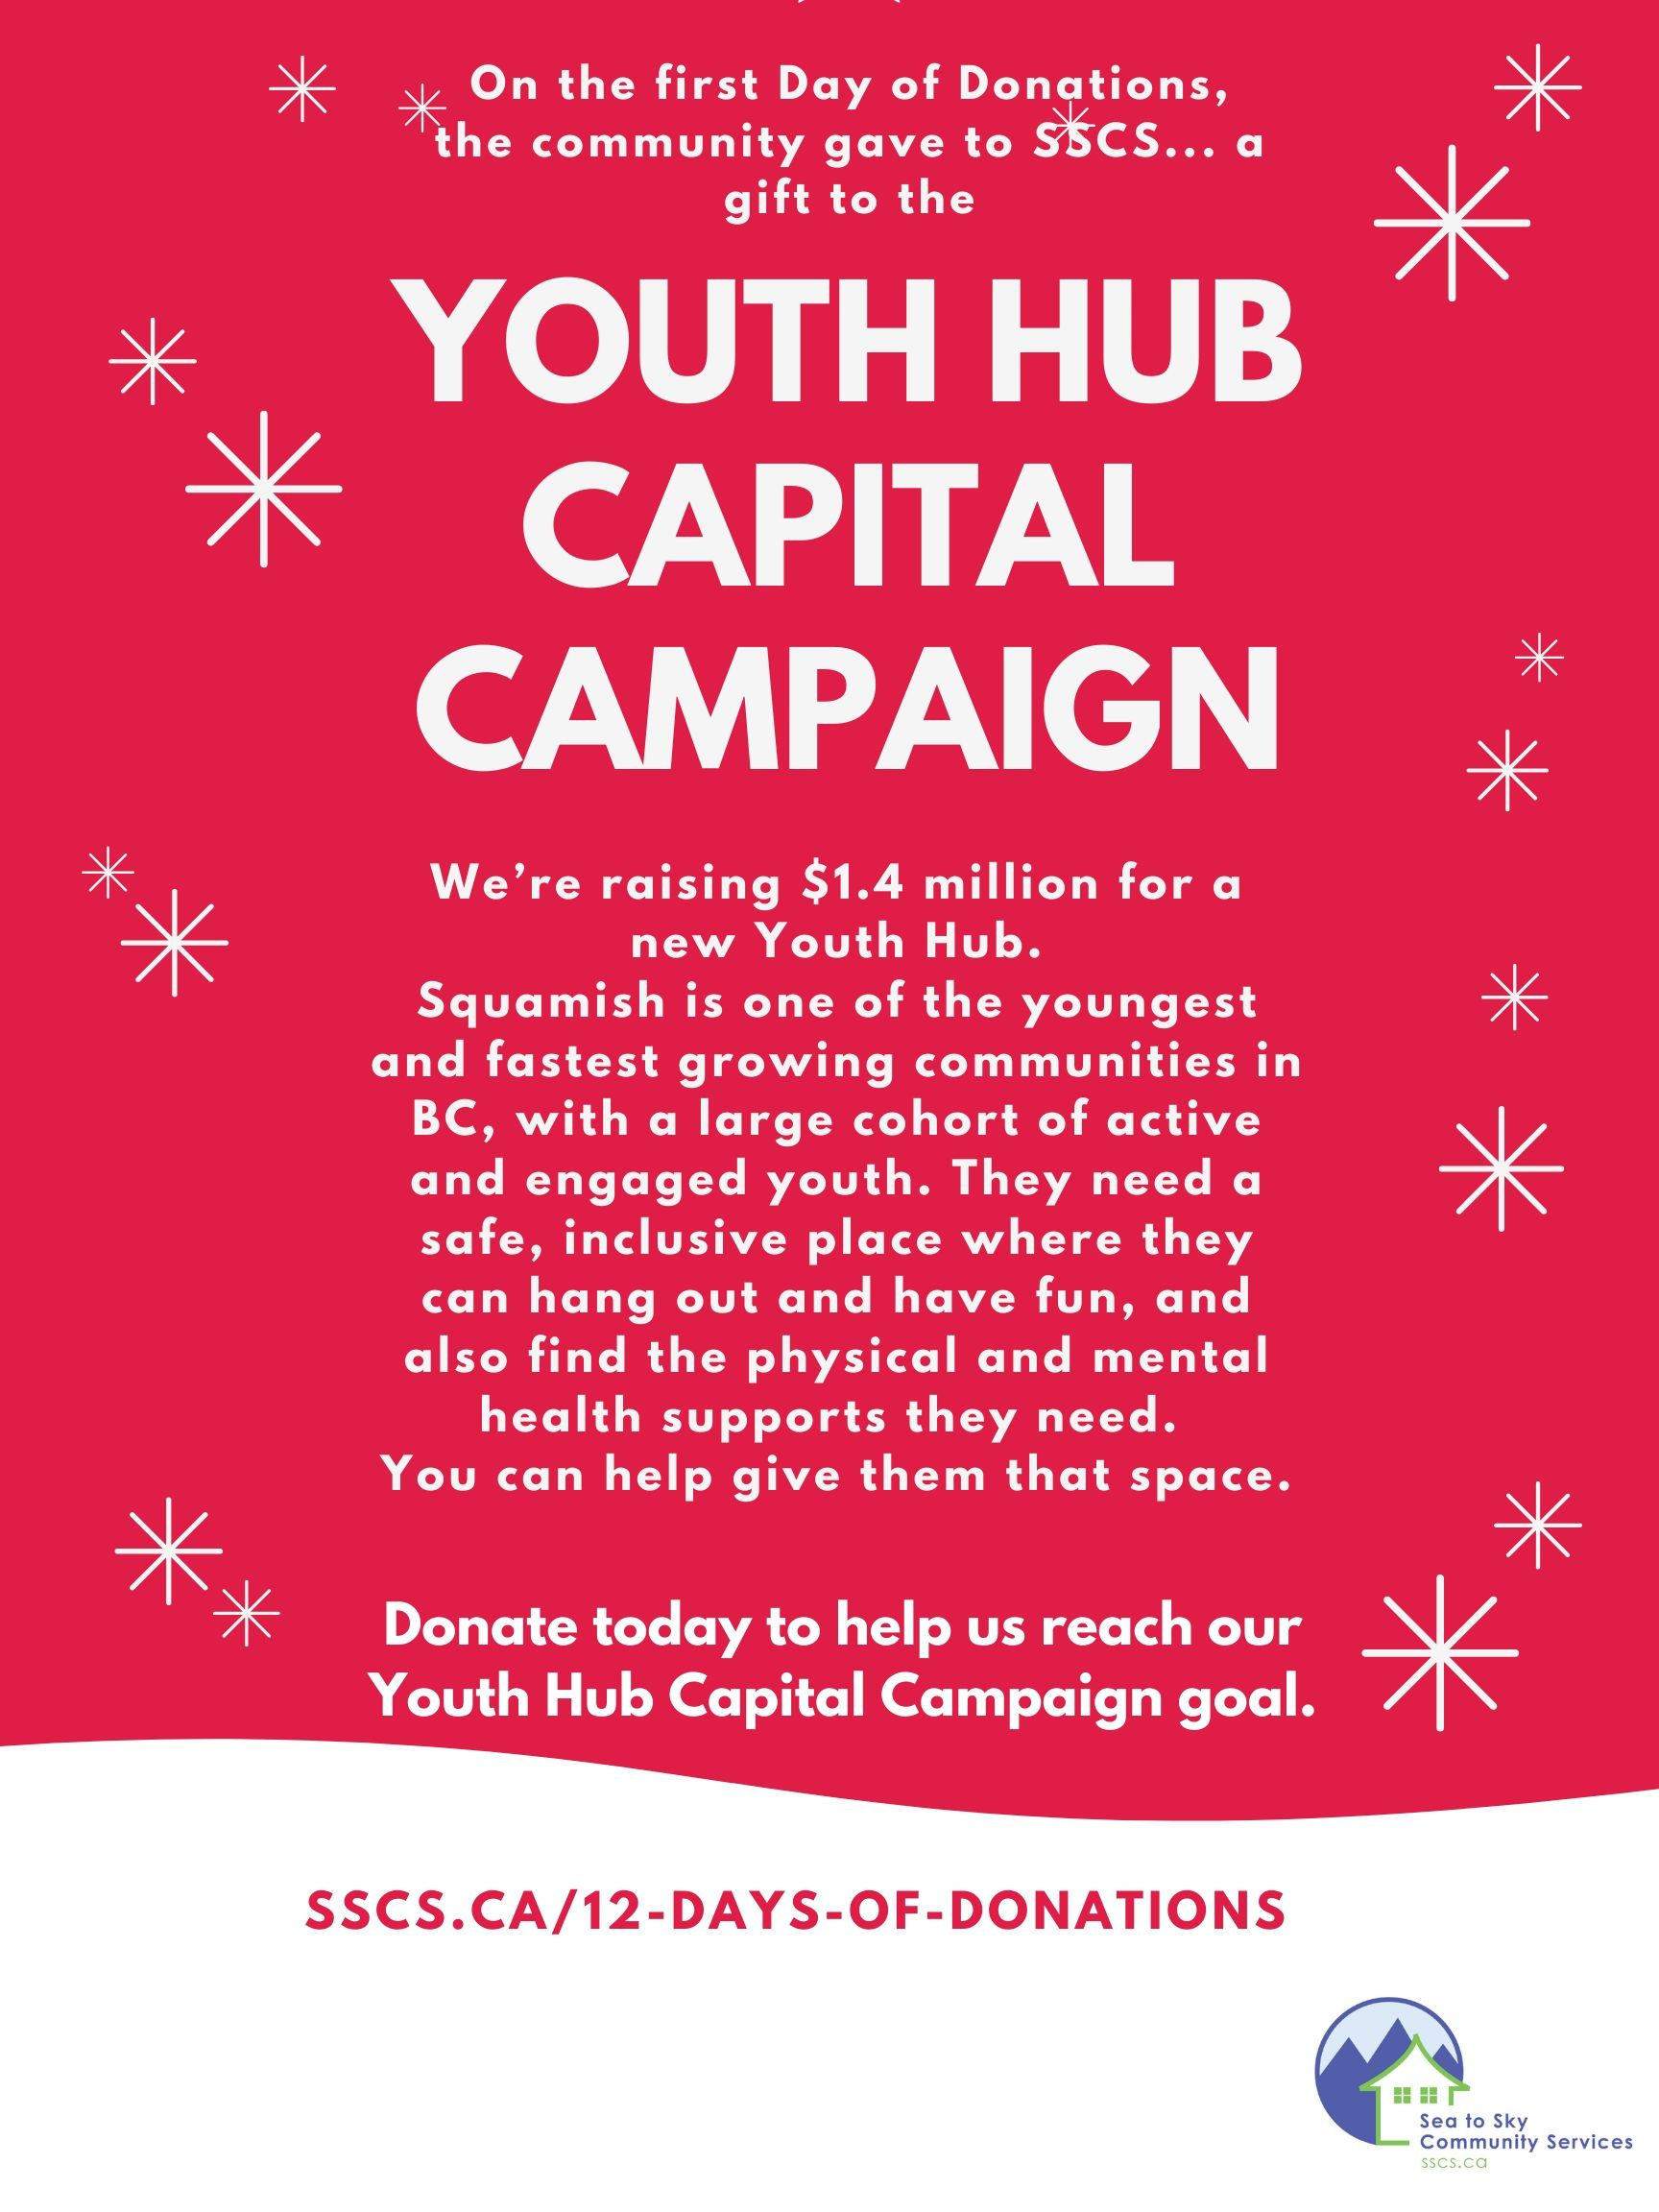 Day 1 - Youth Hub